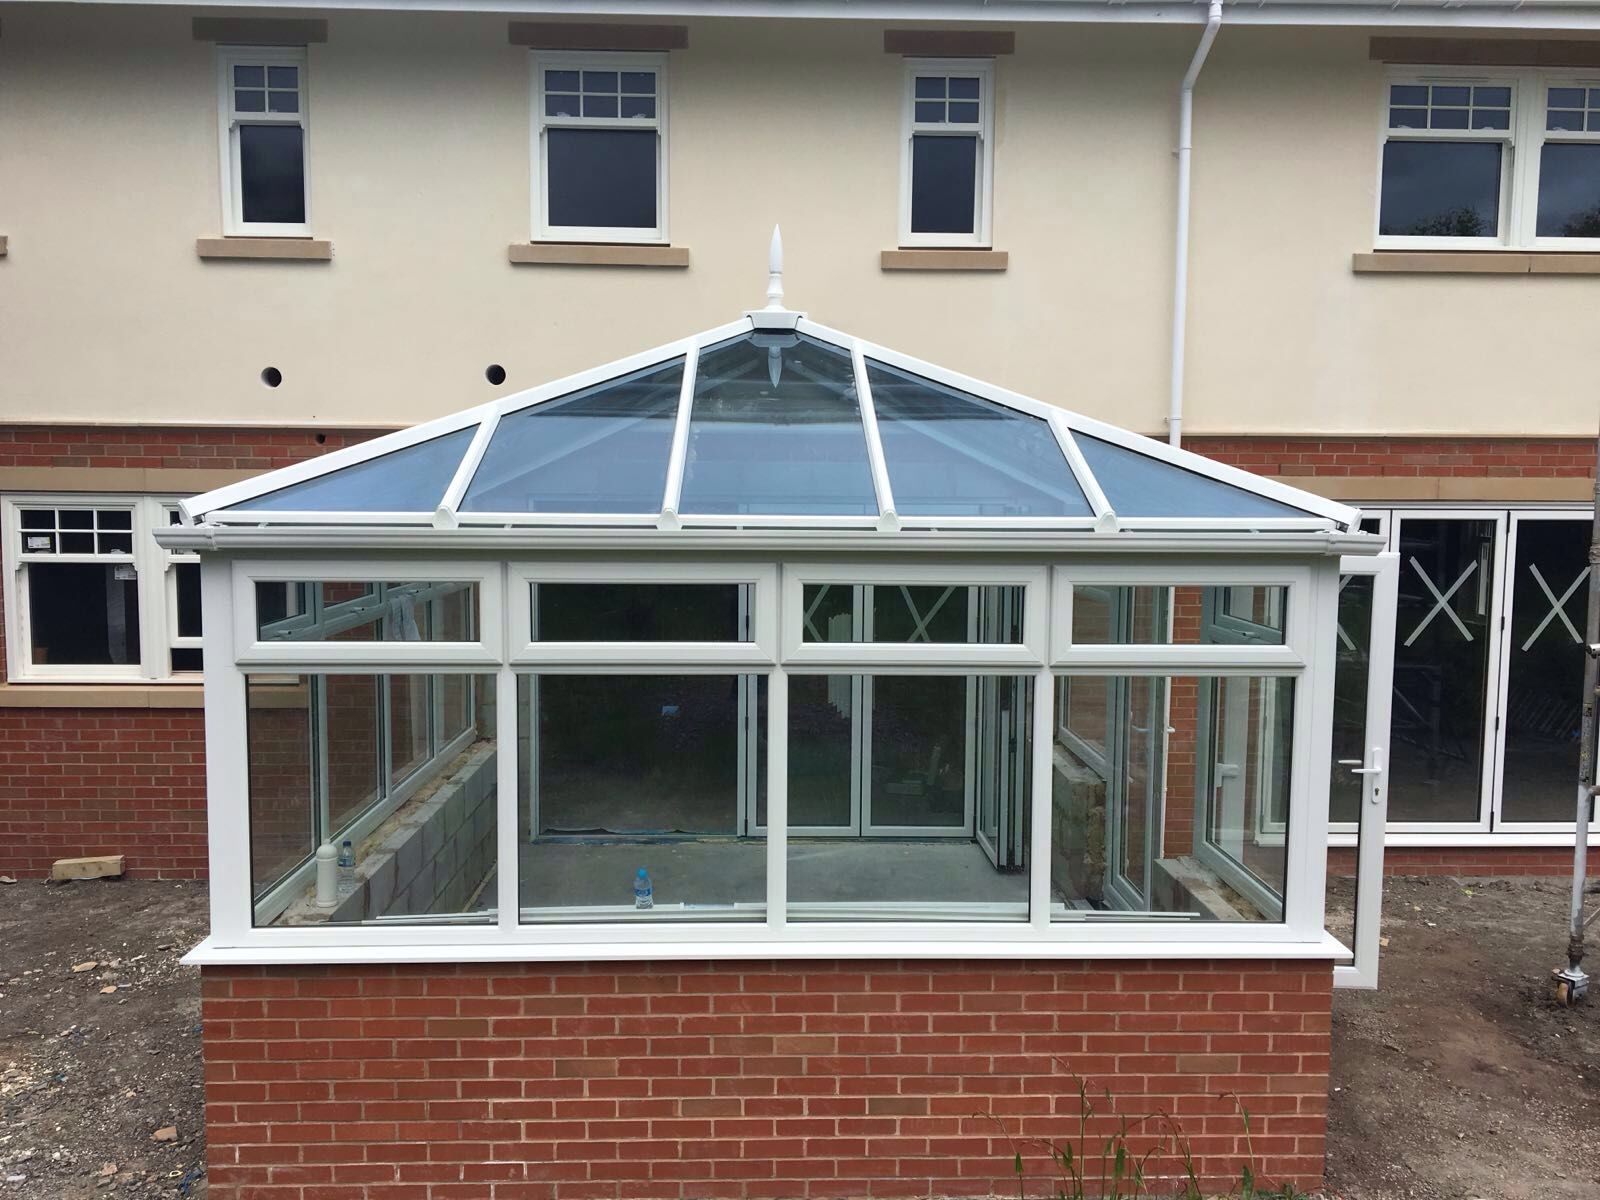 New Double Glazed Windows and Conservatory Installation in Heswall